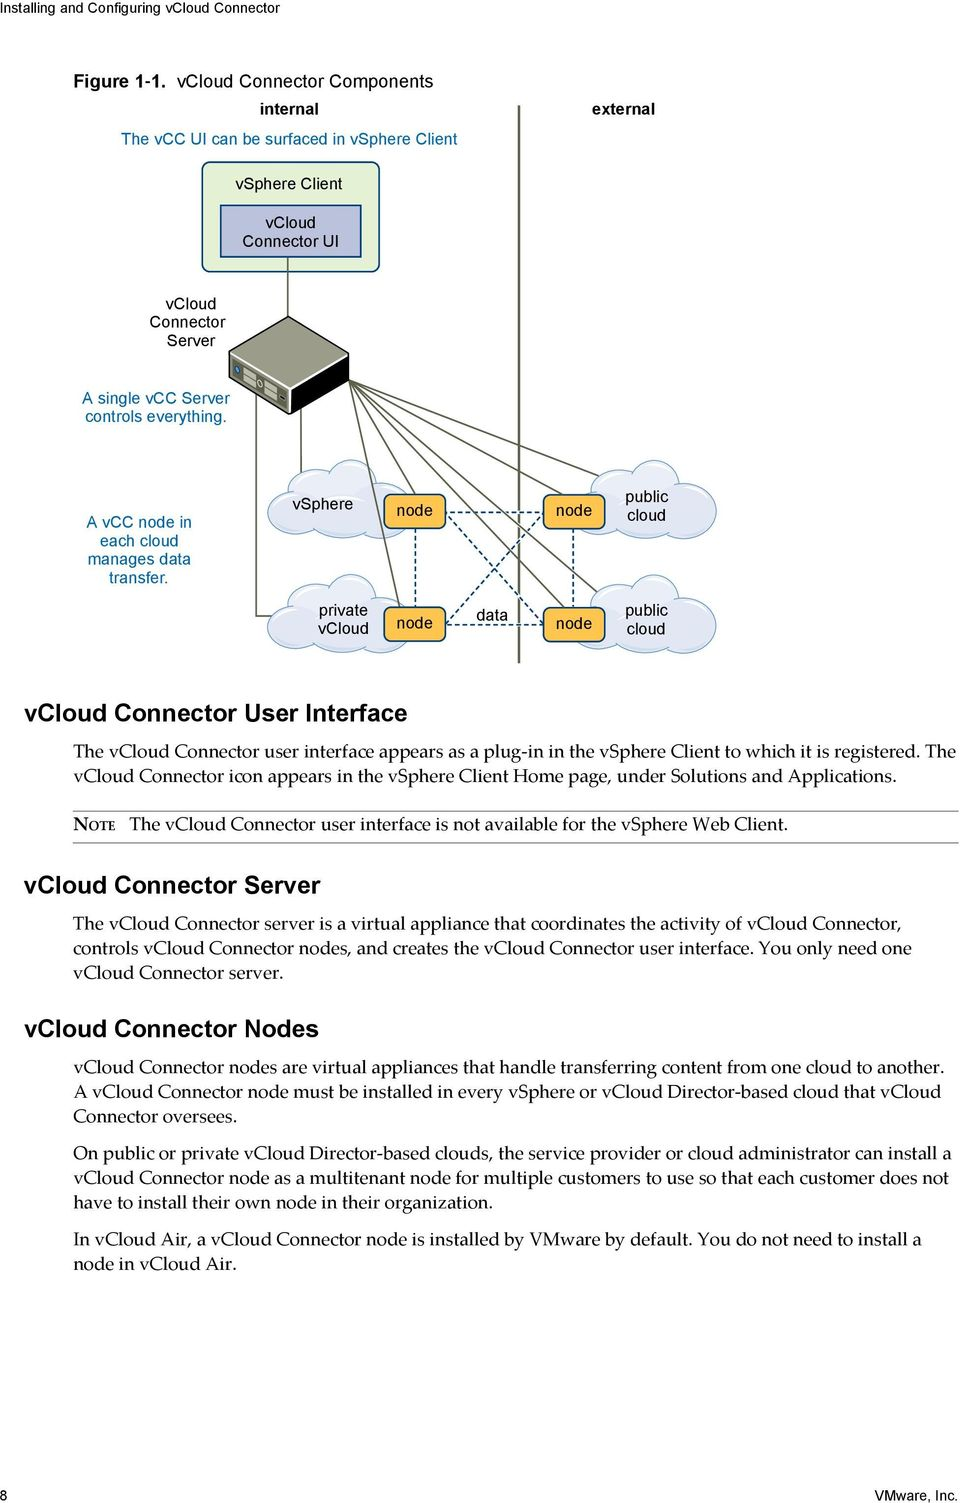 A vcc node in each cloud manages data transfer.